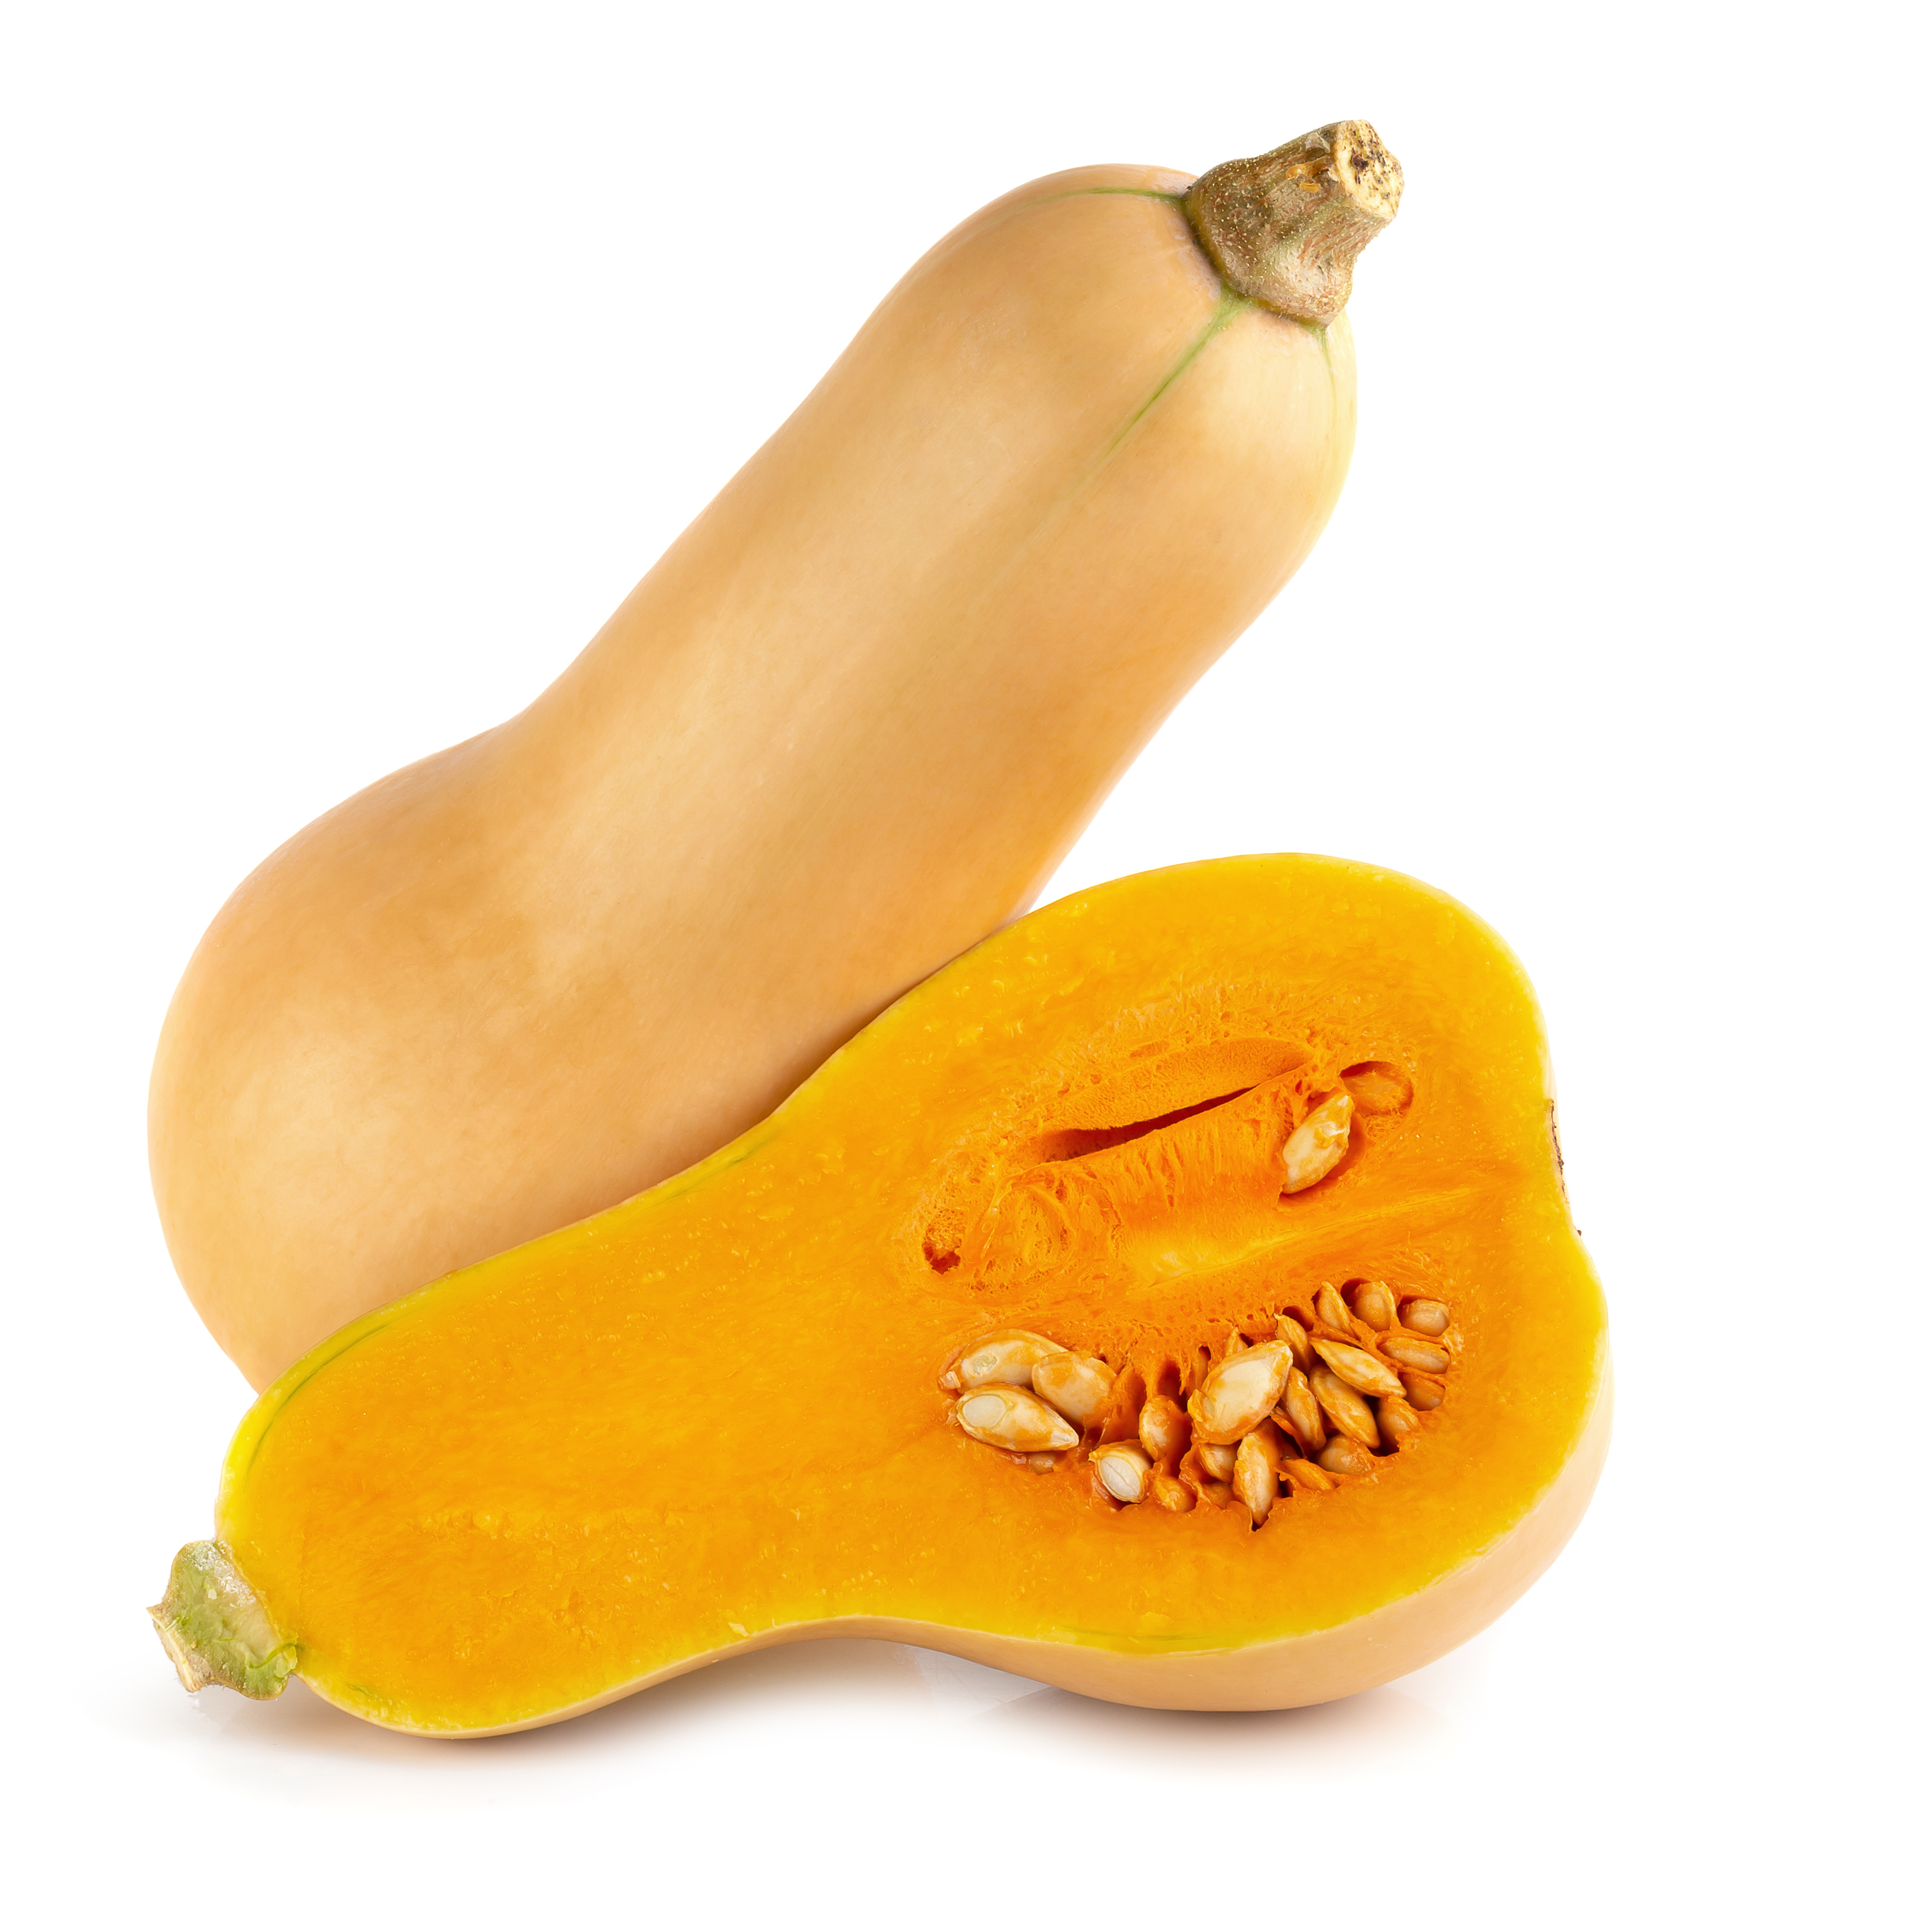 Wholesale Perfect Pact Fresh Butternut Squash sourced from family farms in the USA